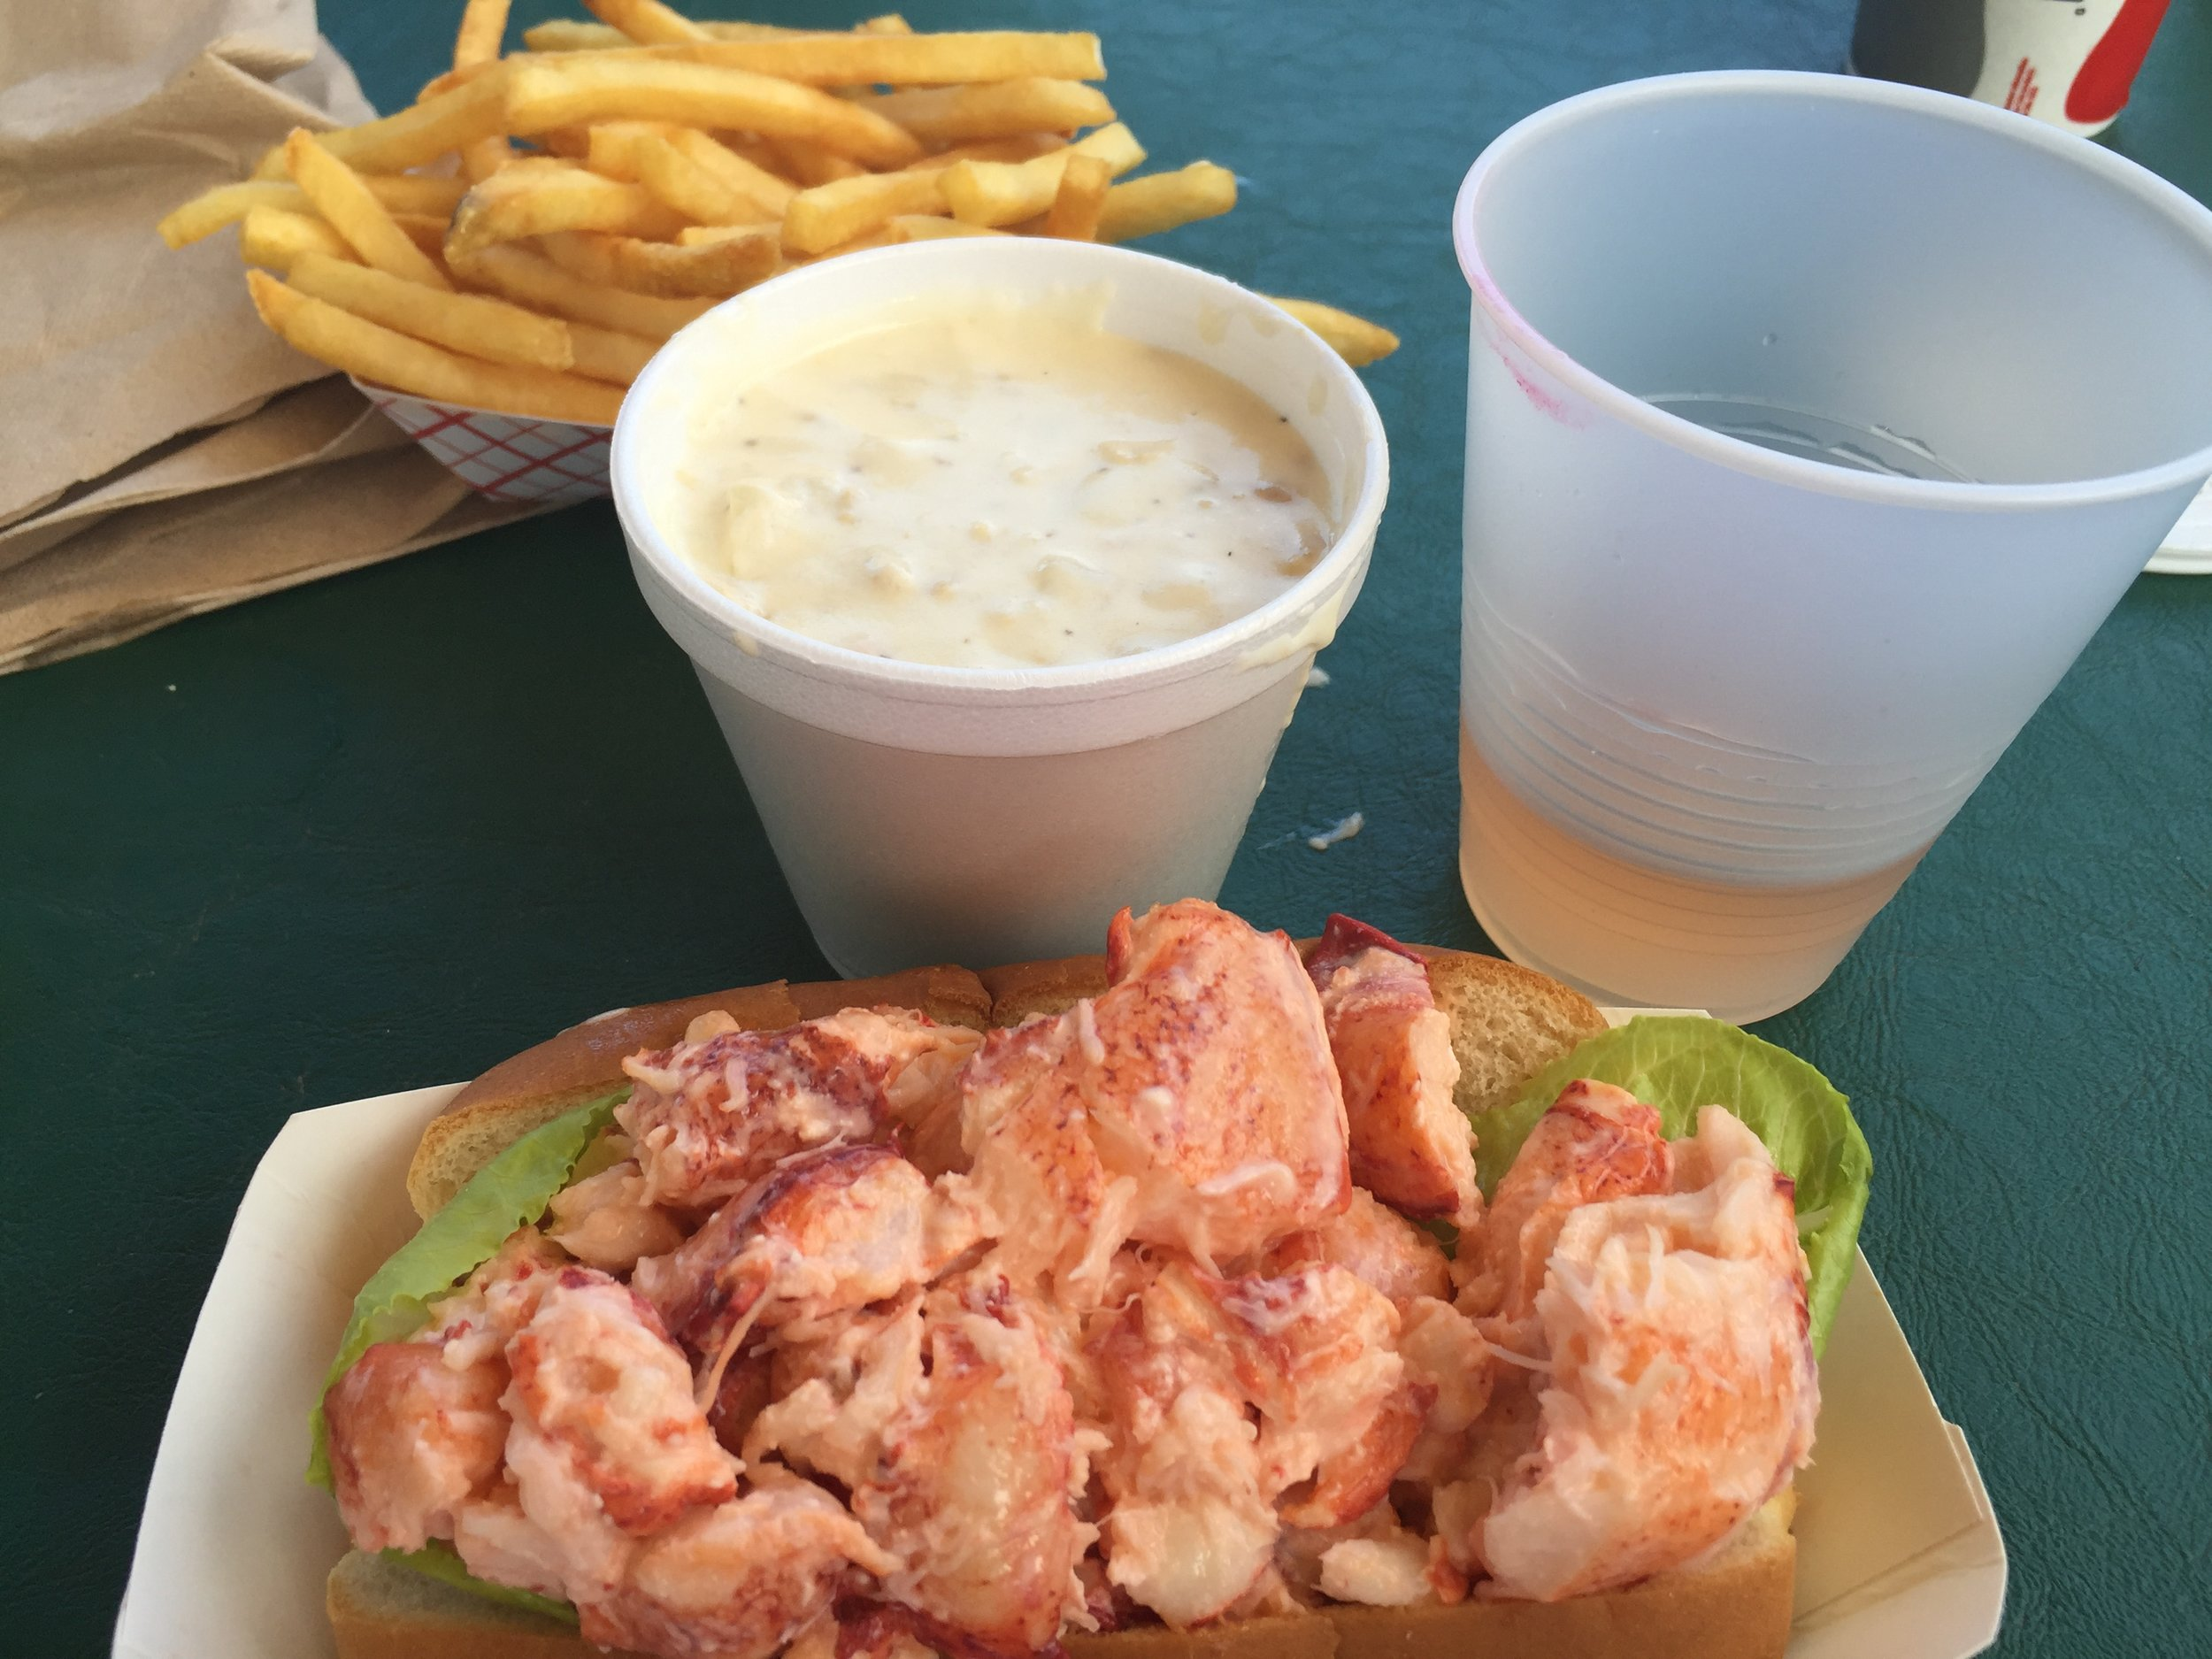 Lobster roll from  Arnold's Lobster in Eastham, MA. Photo courtesy of Kimberly Charles.